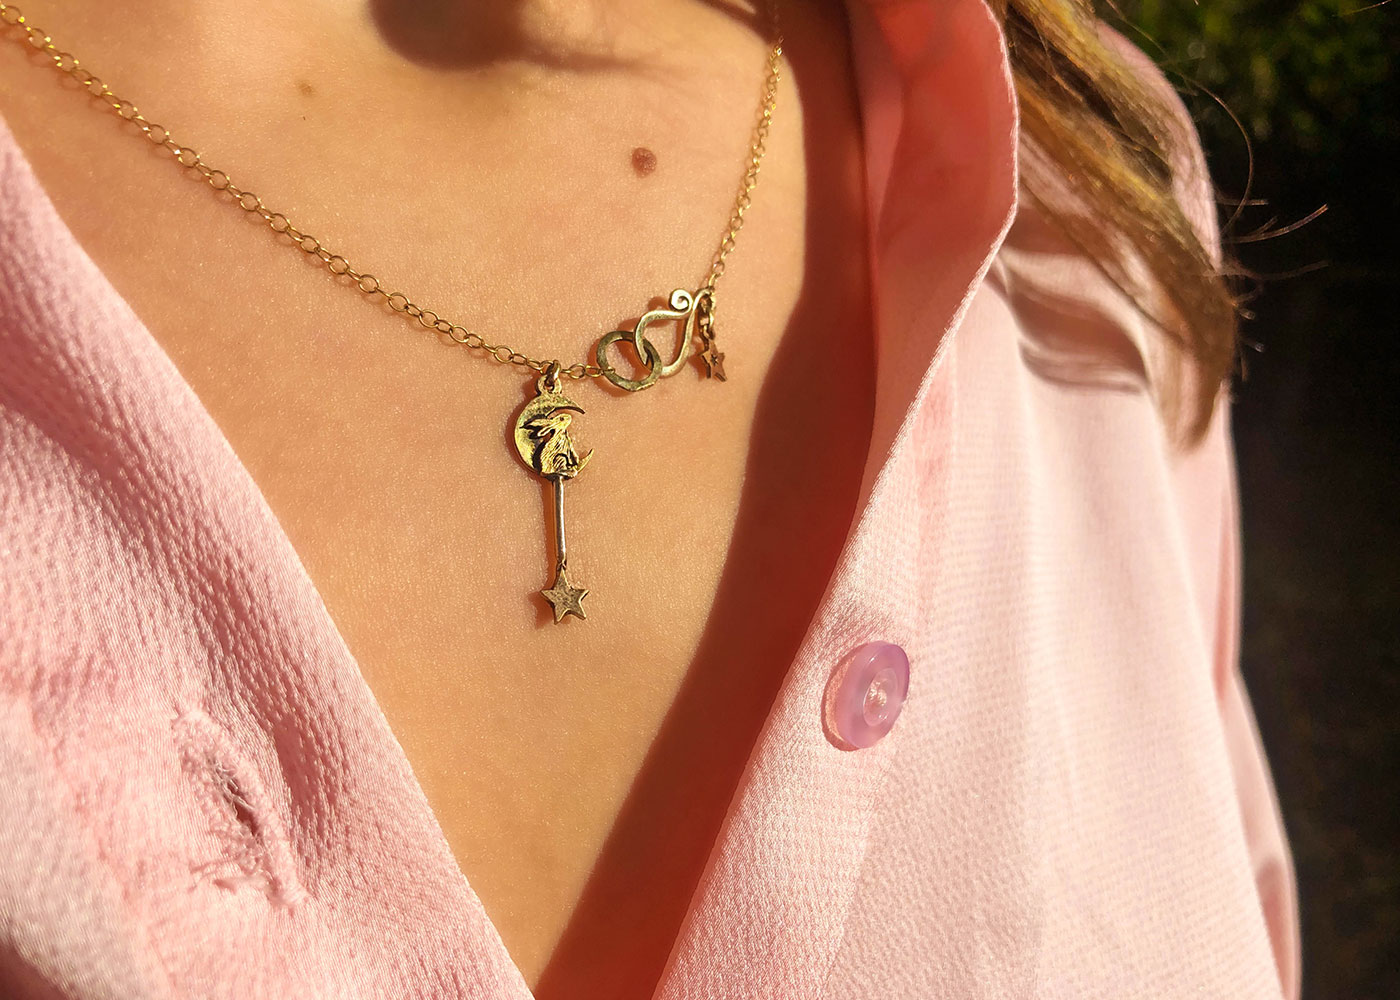 Gold moon gazing hare necklace - handcrafted and recycled 22ct gold coin.